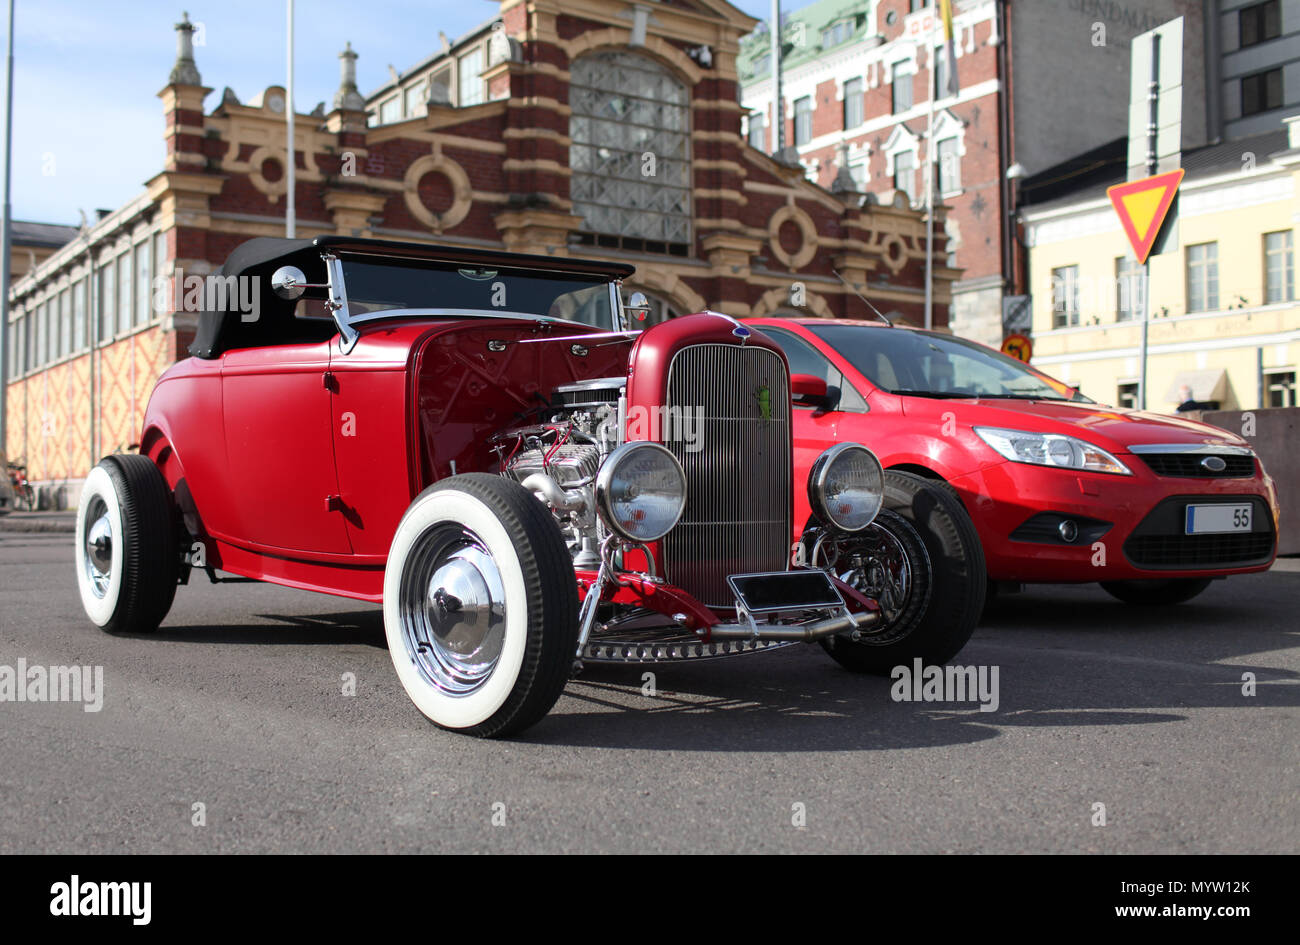 Ford Hot Rod Roadster Imágenes De Stock & Ford Hot Rod Roadster ...